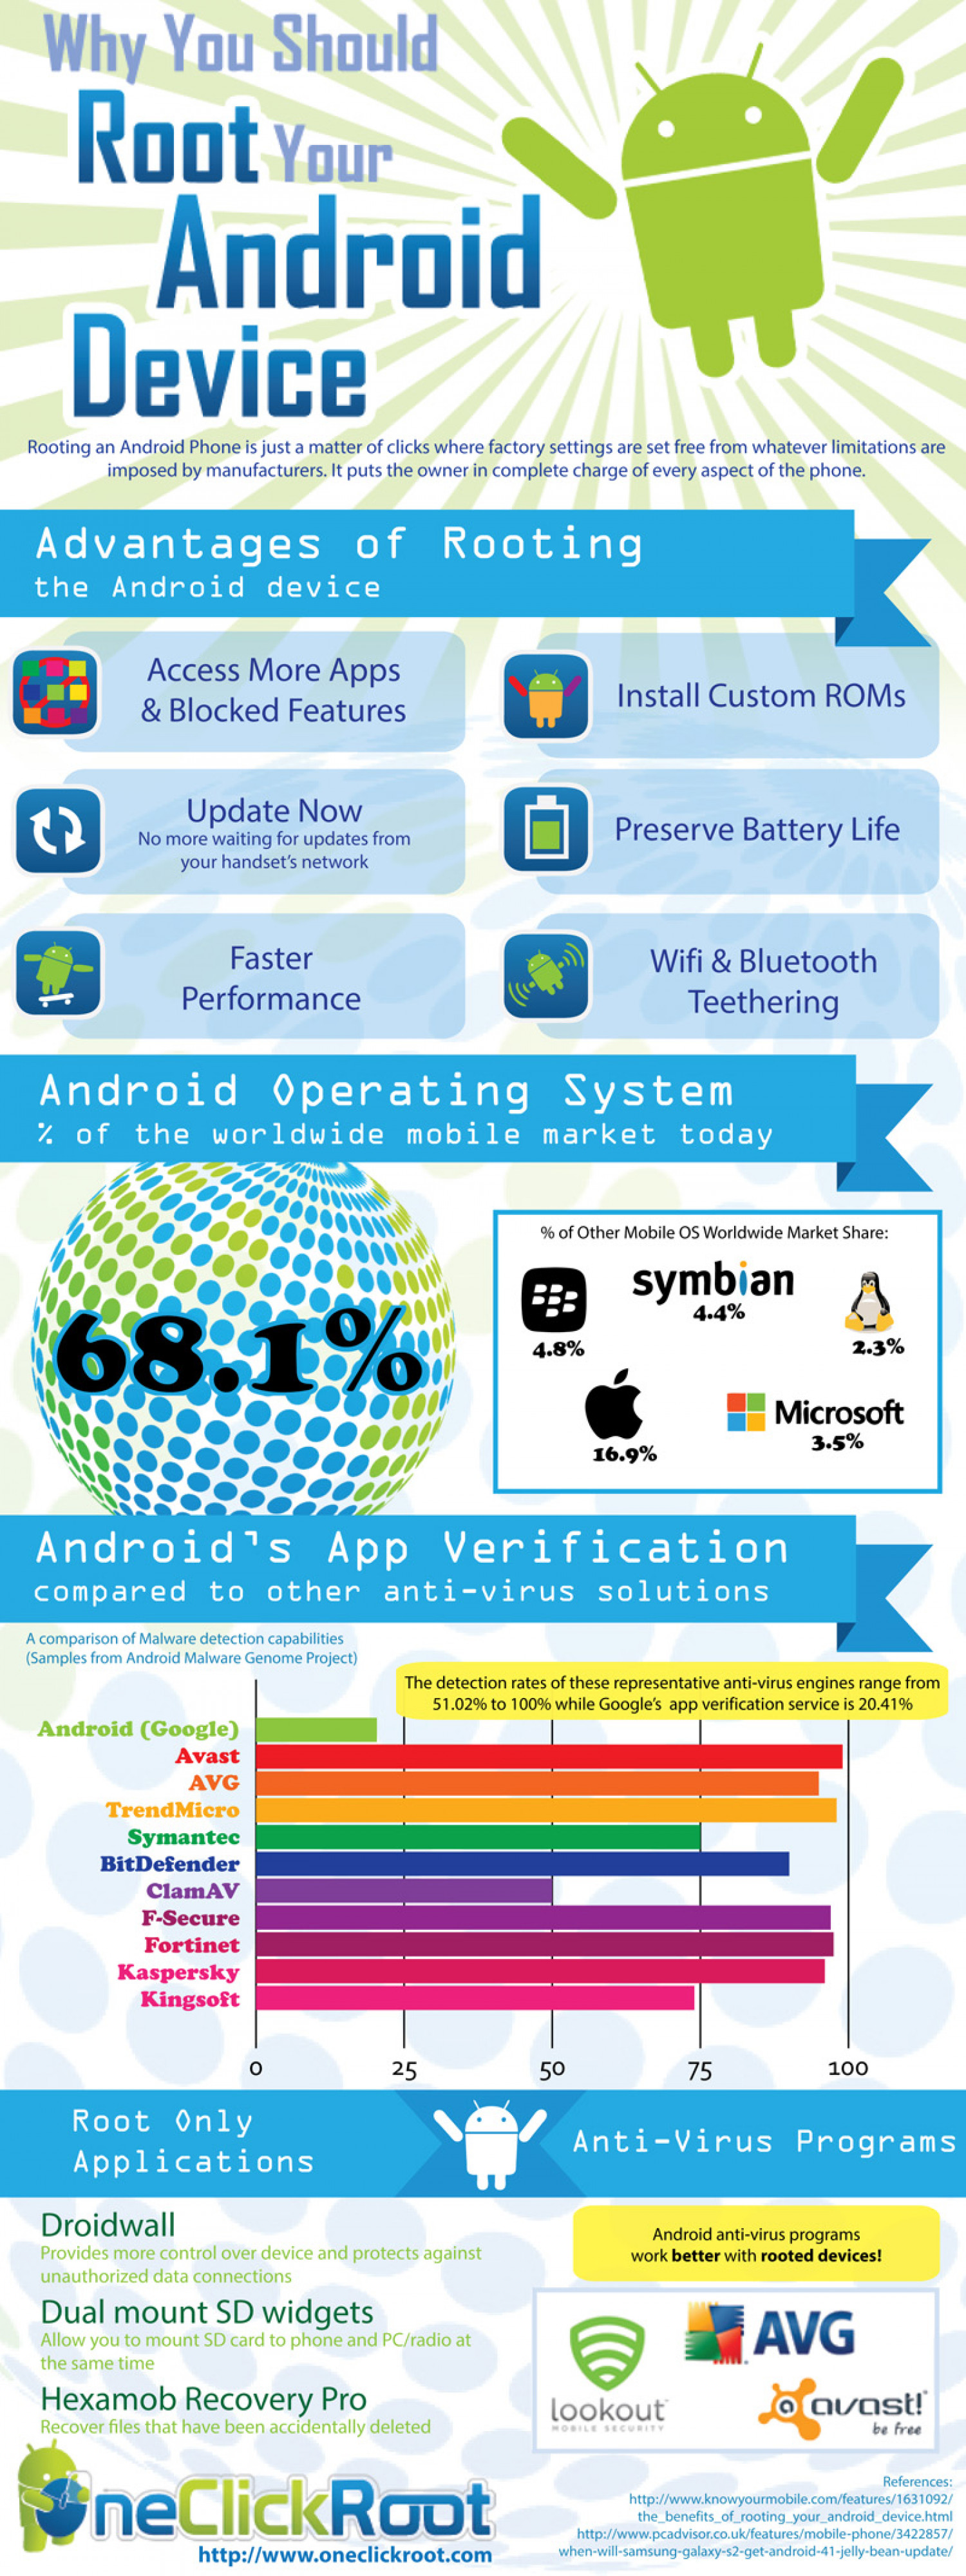 Why You Should Root Your Android Device Infographic